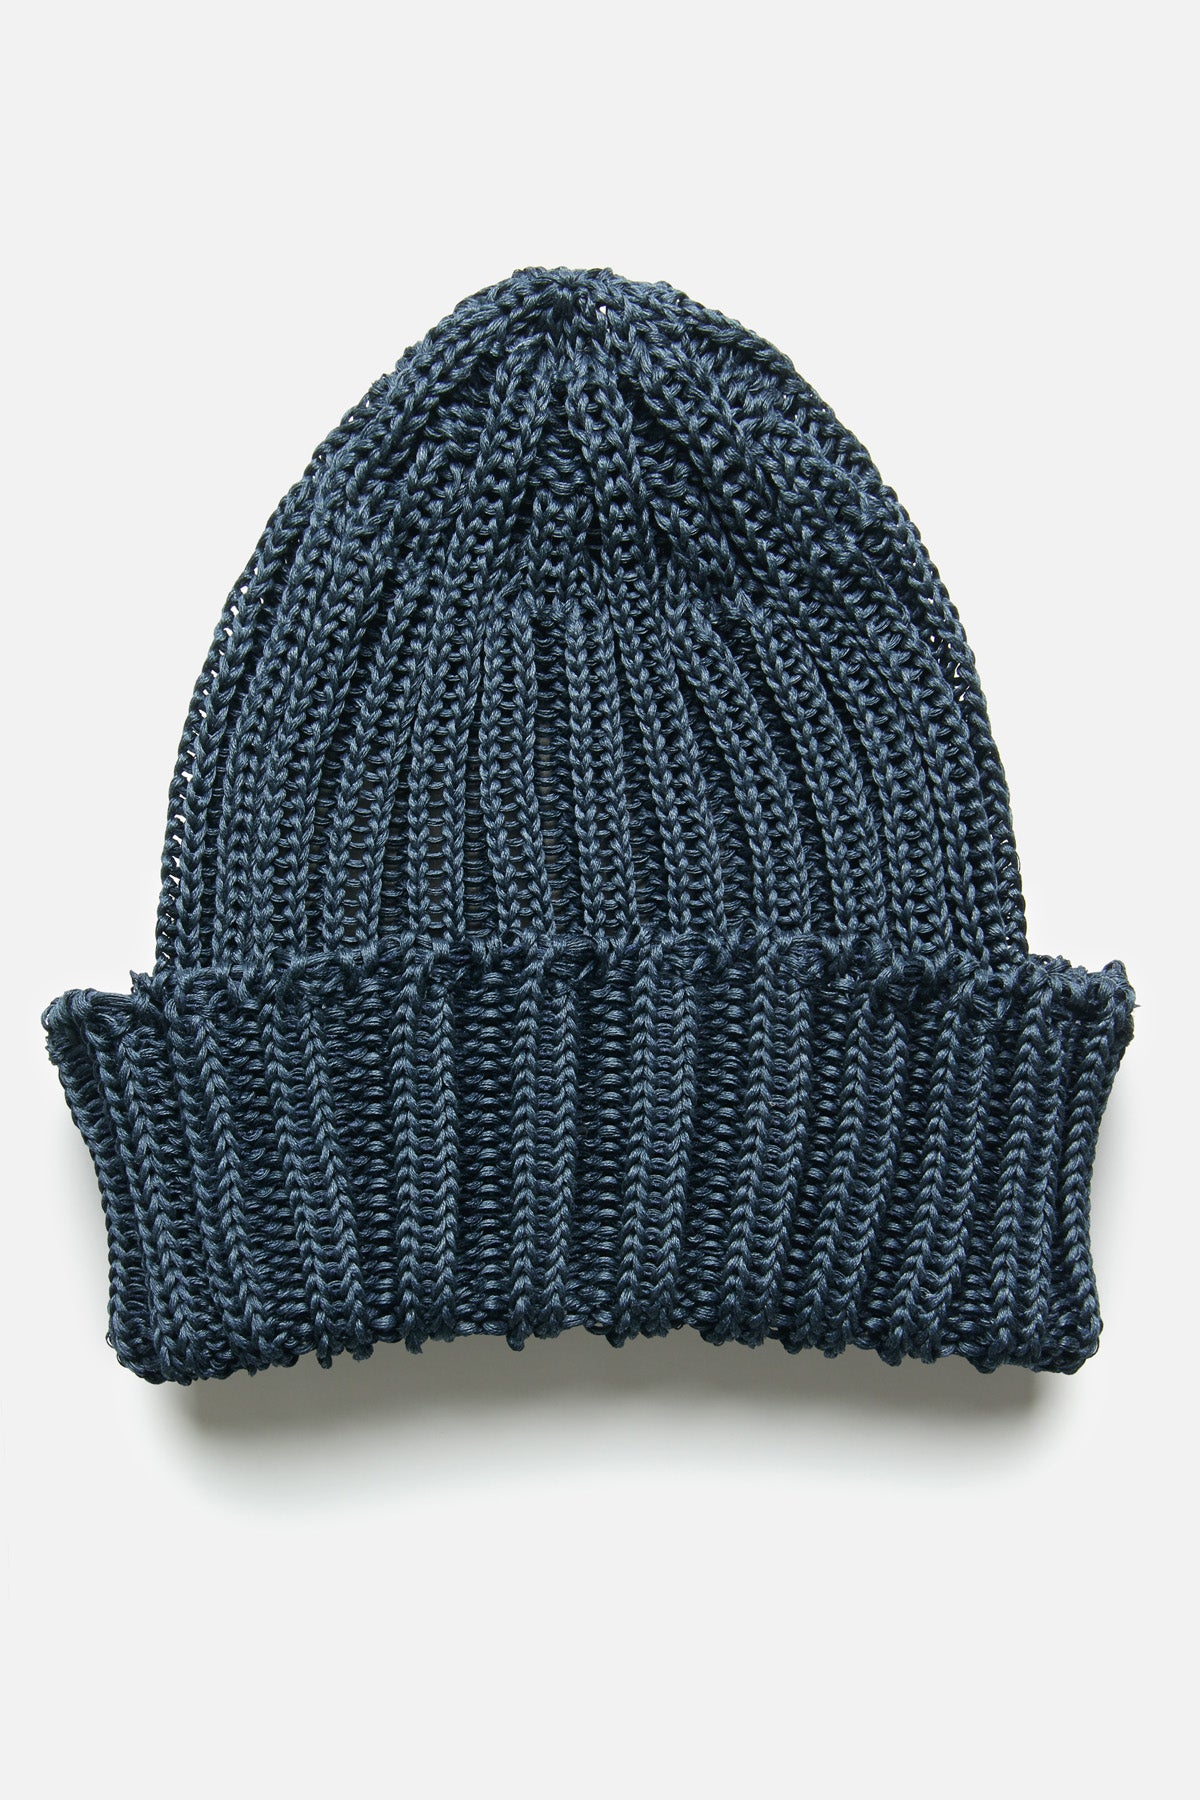 CABLEAMI WATCH CAP IN NAVY - Fortune Goods